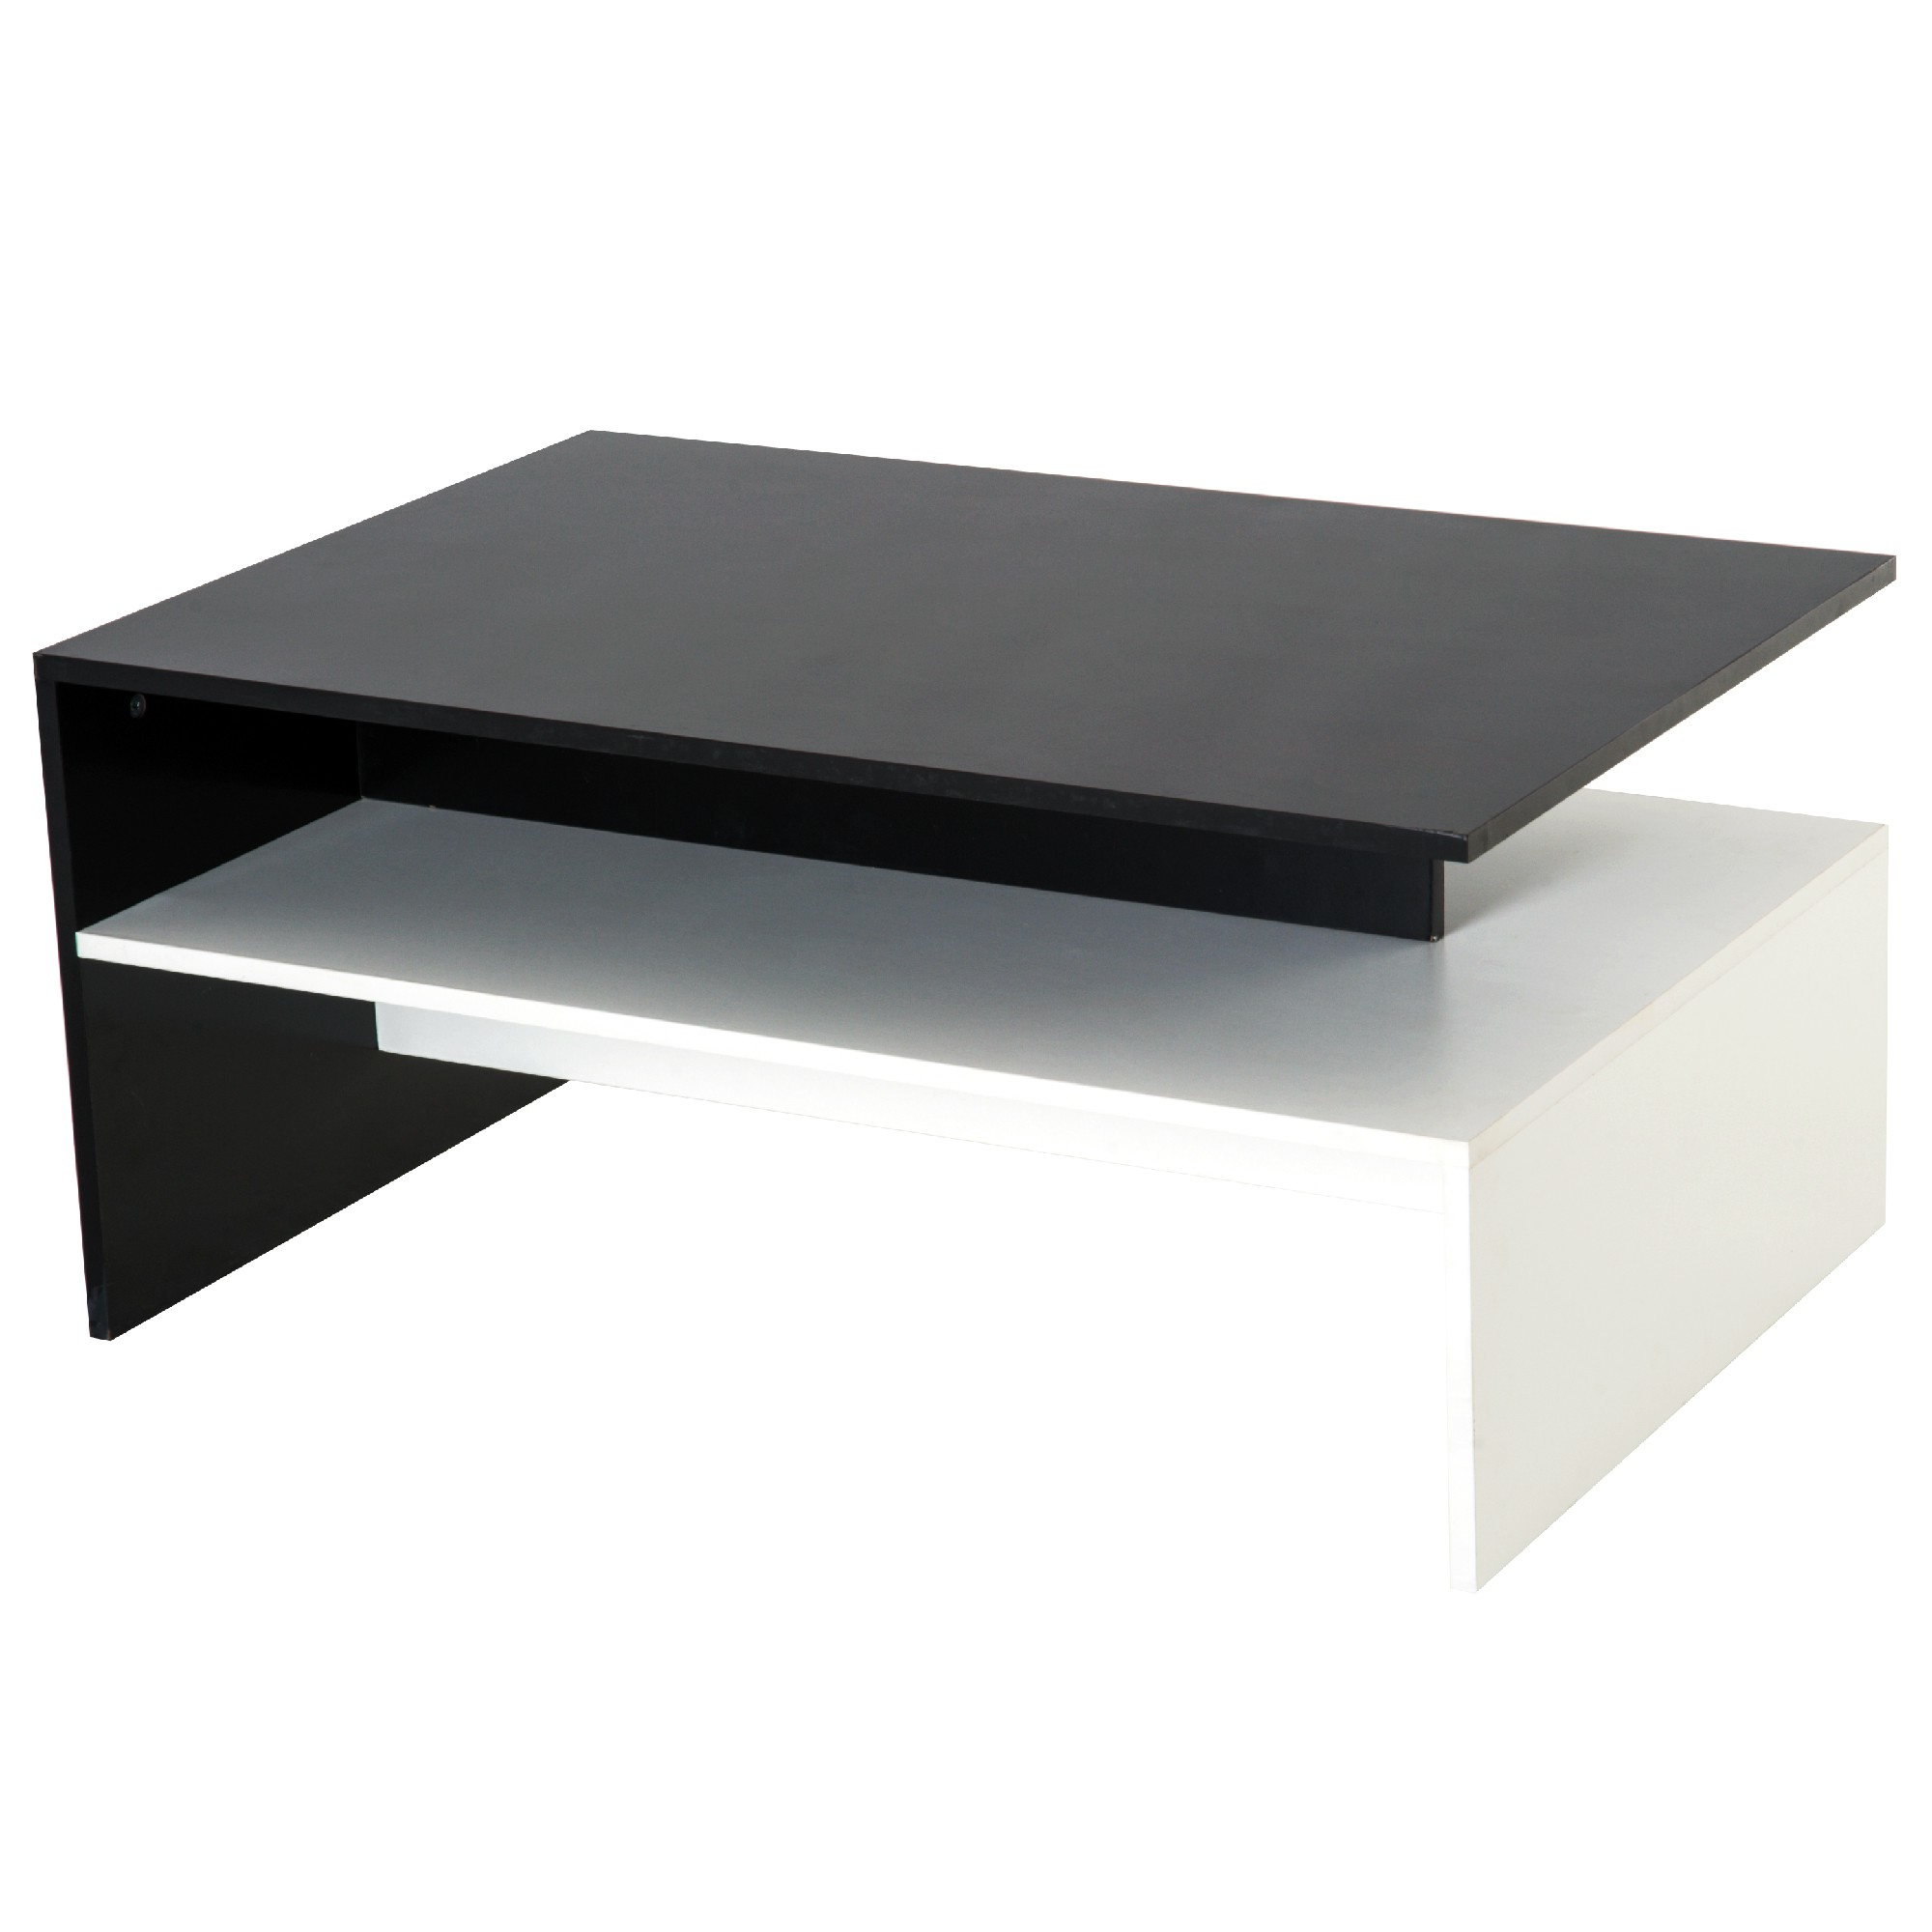 Homcom Minimalist Coffee Table Living Room W/ Storage Shelf (View 16 of 20)